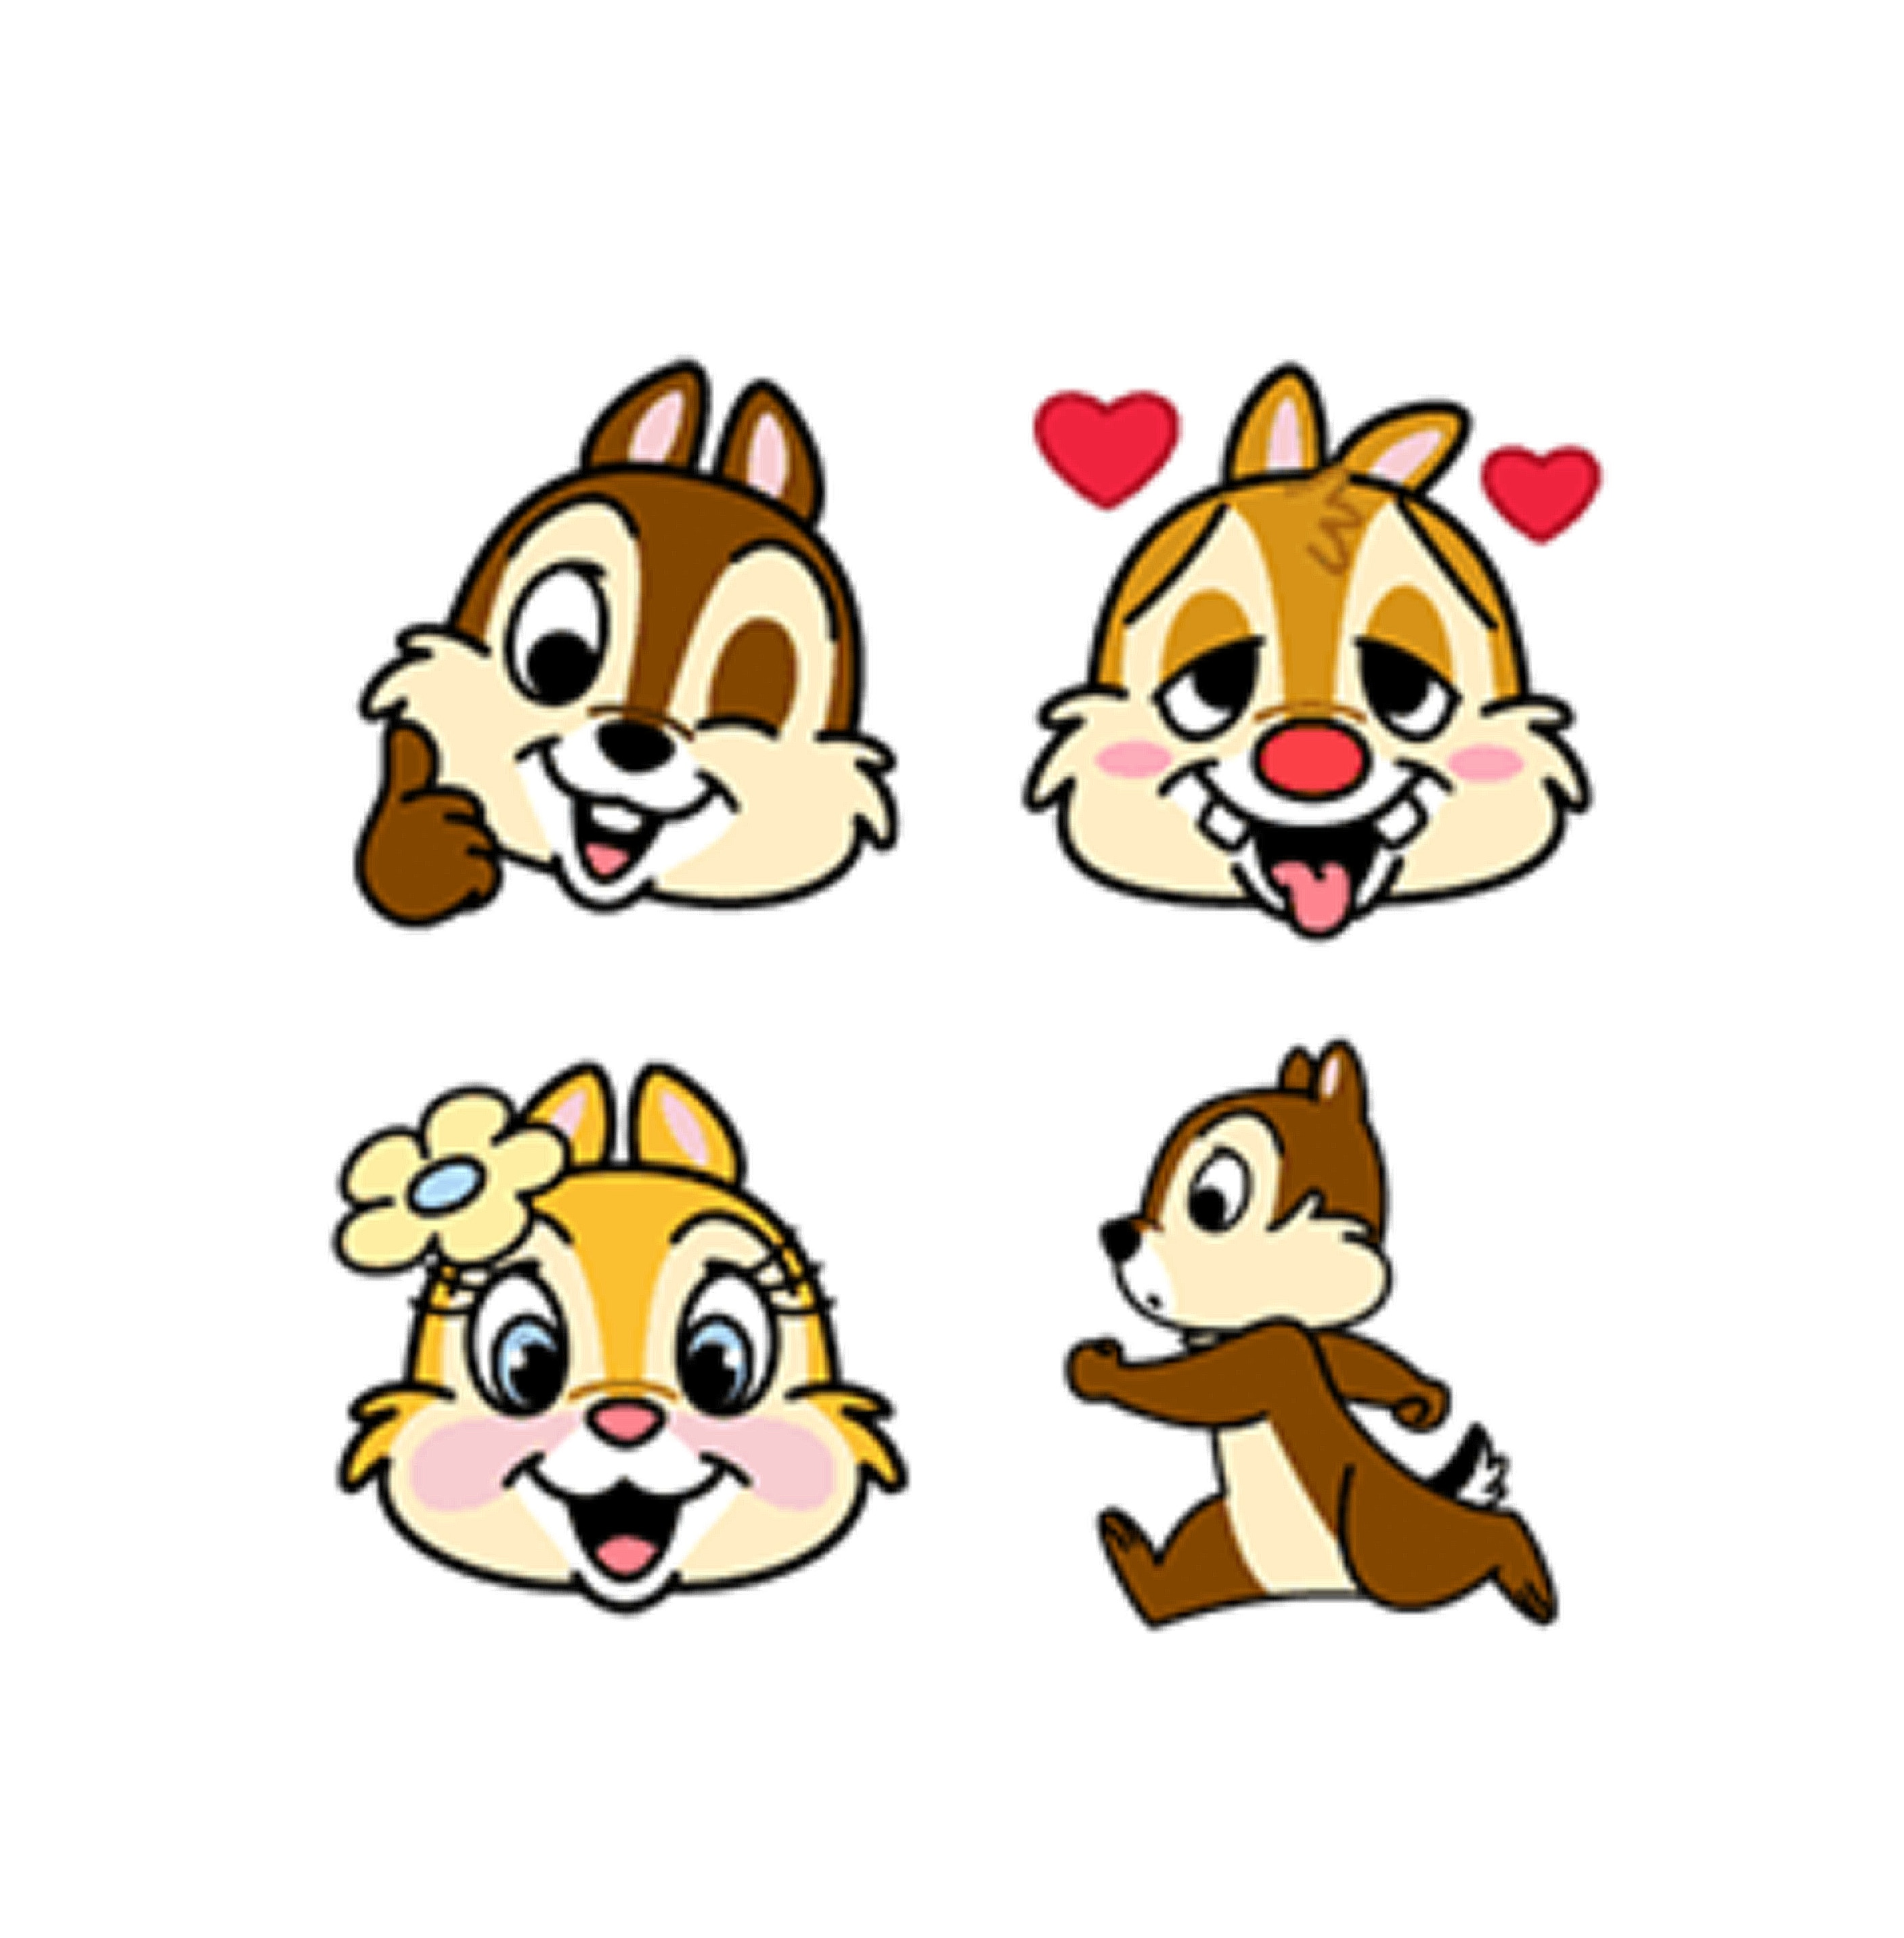 Stickers | Chip 'n' Dale Emoji